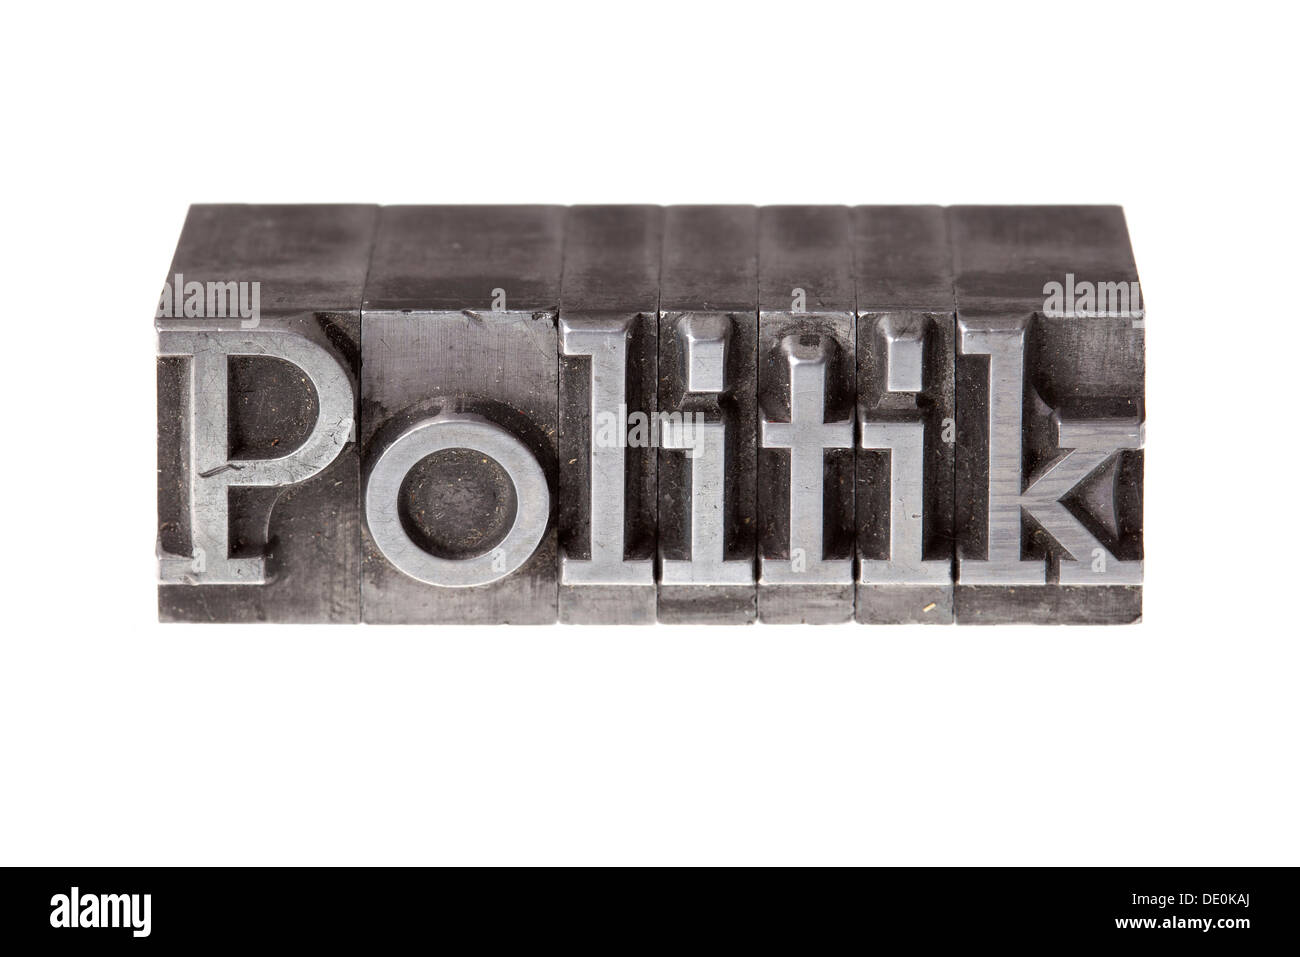 Old lead letters forming the word 'Politik', German for politics - Stock Image